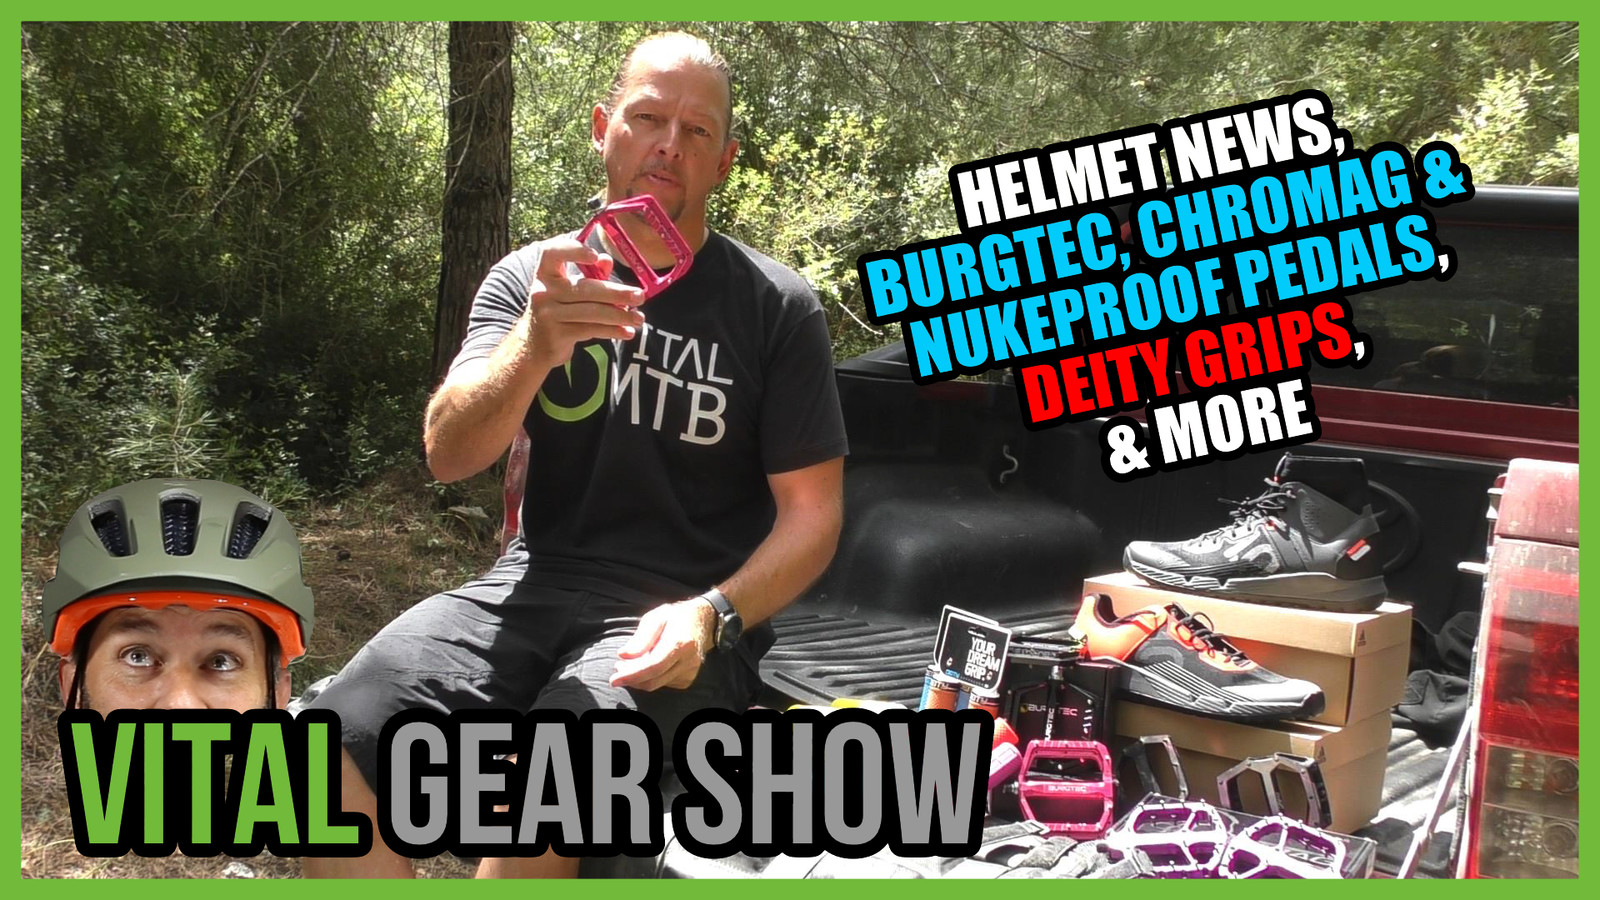 New Bontrager Helmet, Burgtec, Chromag, and Nukeproof Flat Pedals, Deity Grips - Vital Gear Show